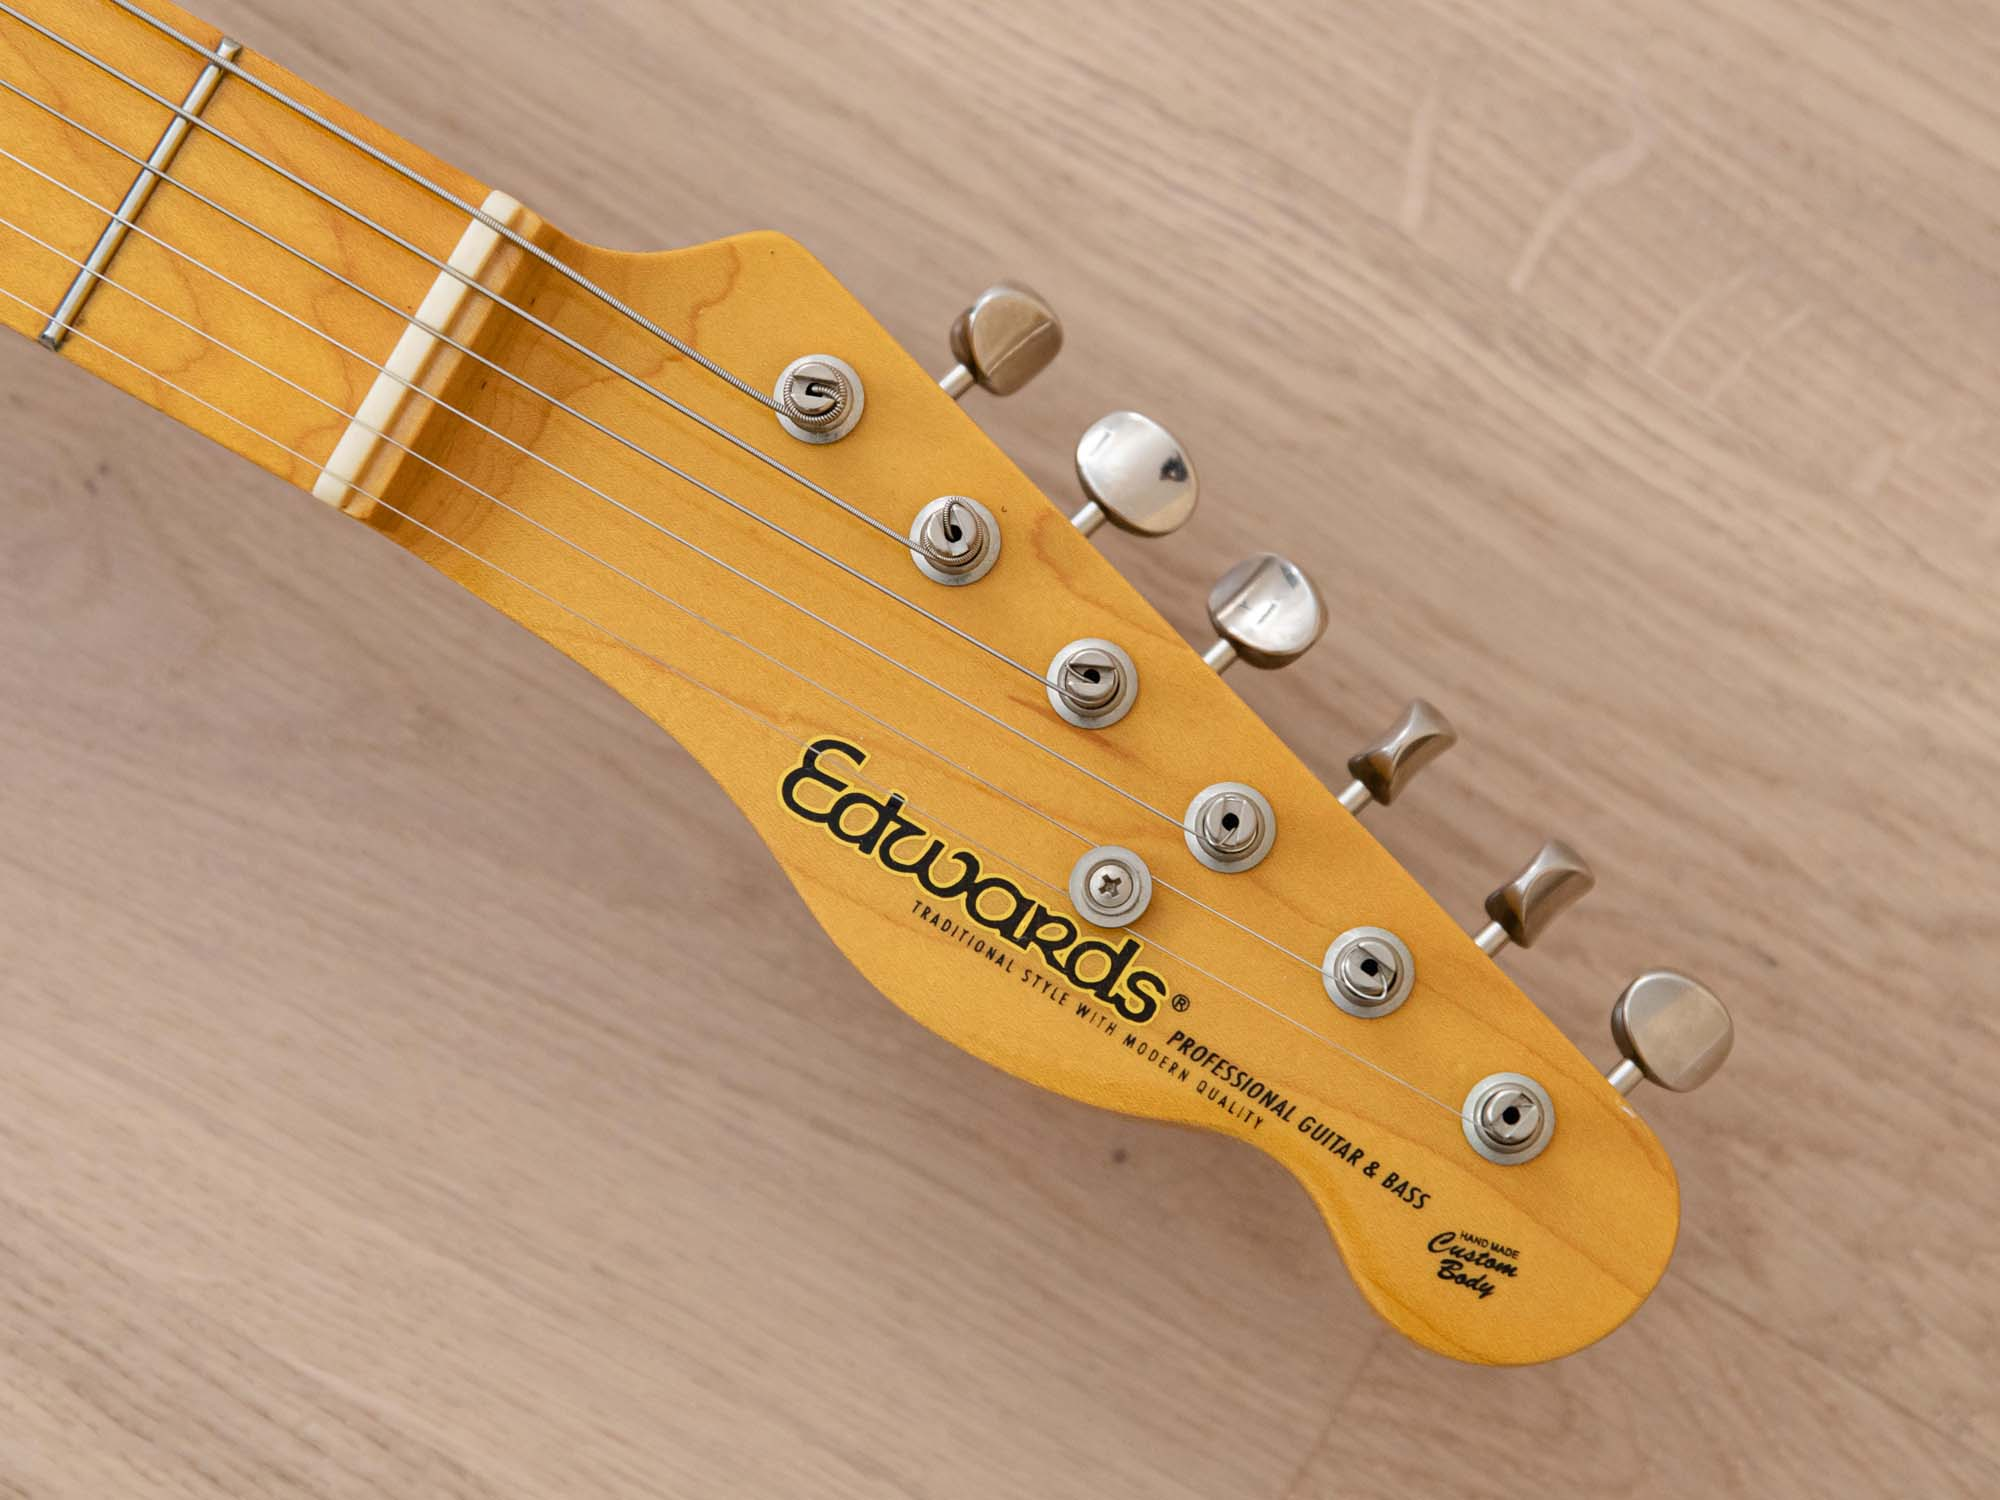 2014 Edwards by ESP E-TE-92M/LT Electric Guitar T-Style Blonde Ash w/ Seymour Duncans, Japan